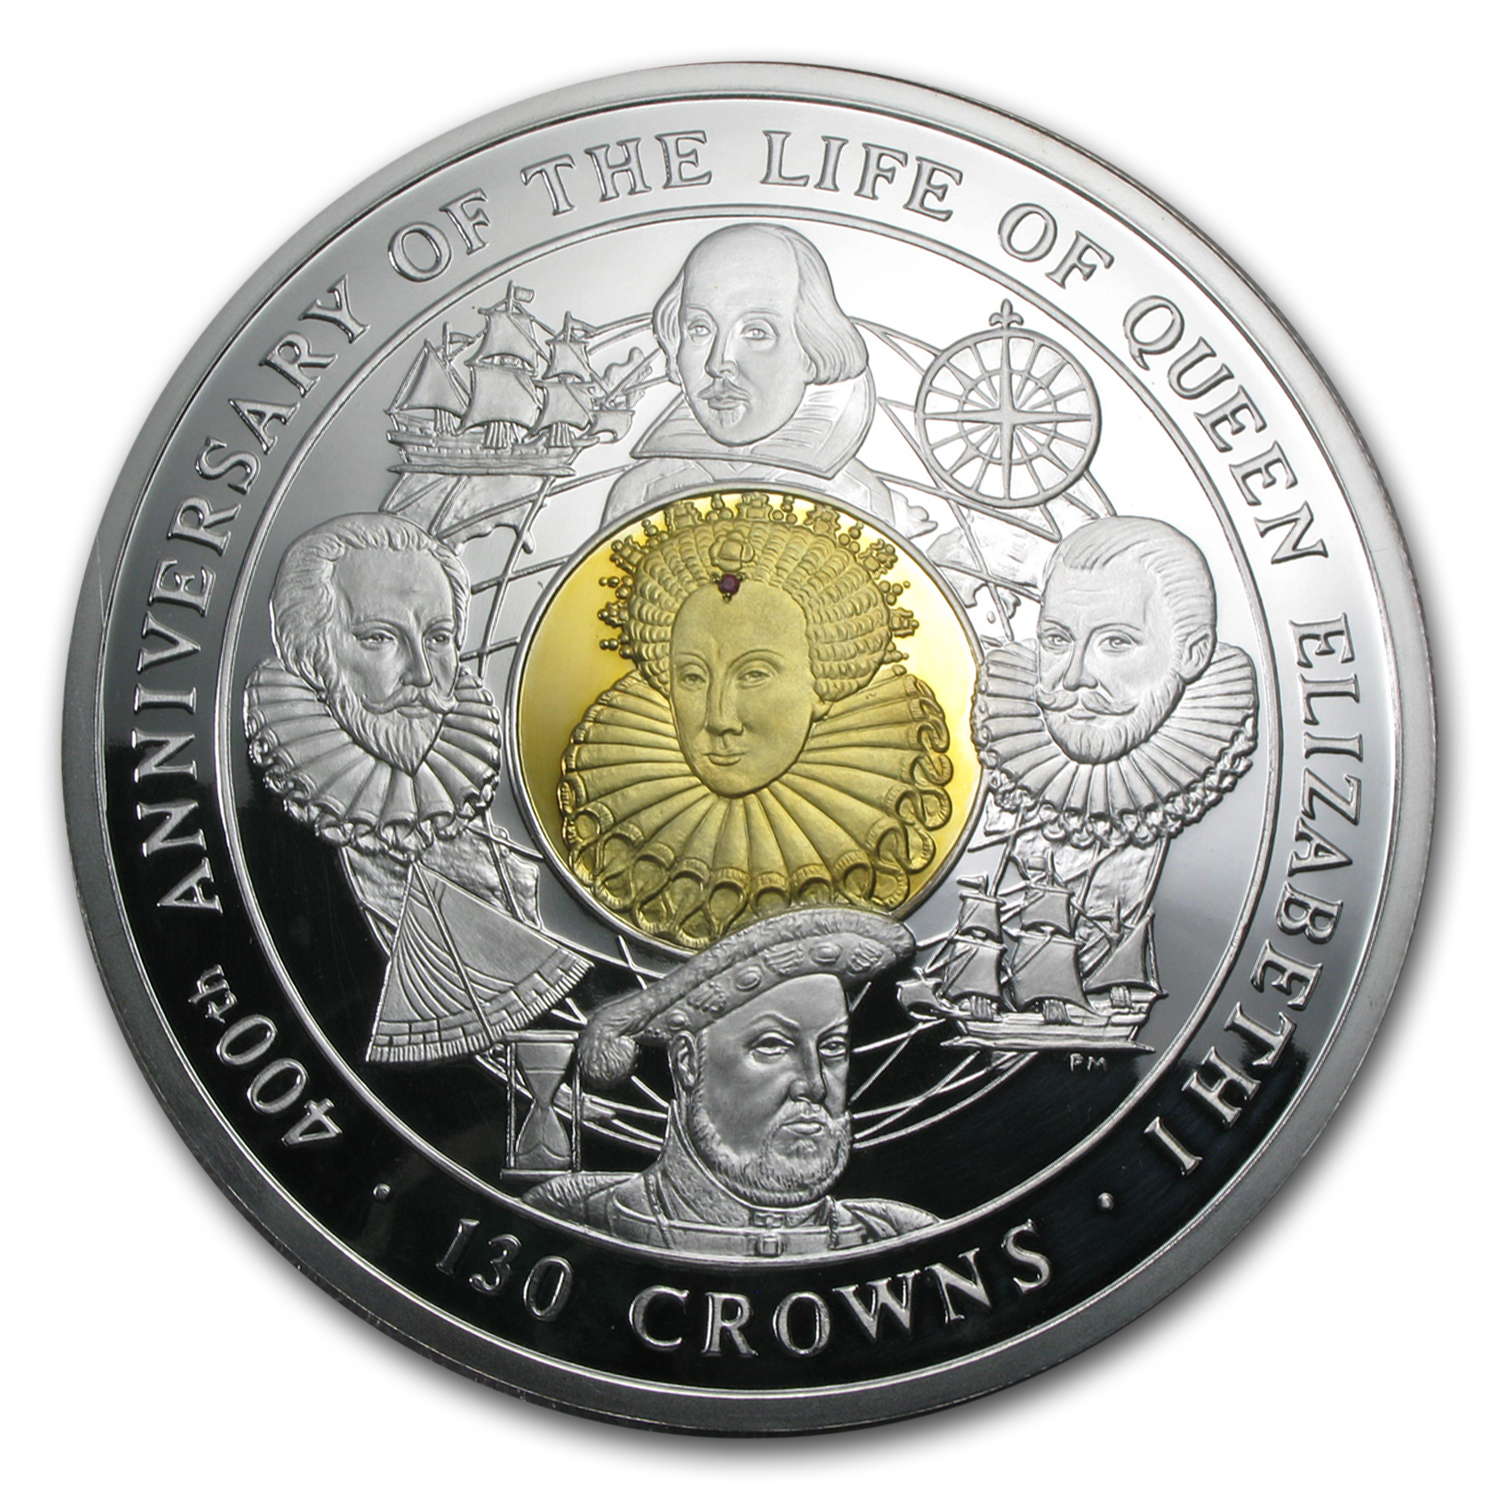 2003 Isle of Man 4 Kilo Silver Queen Elizabeth I Coin